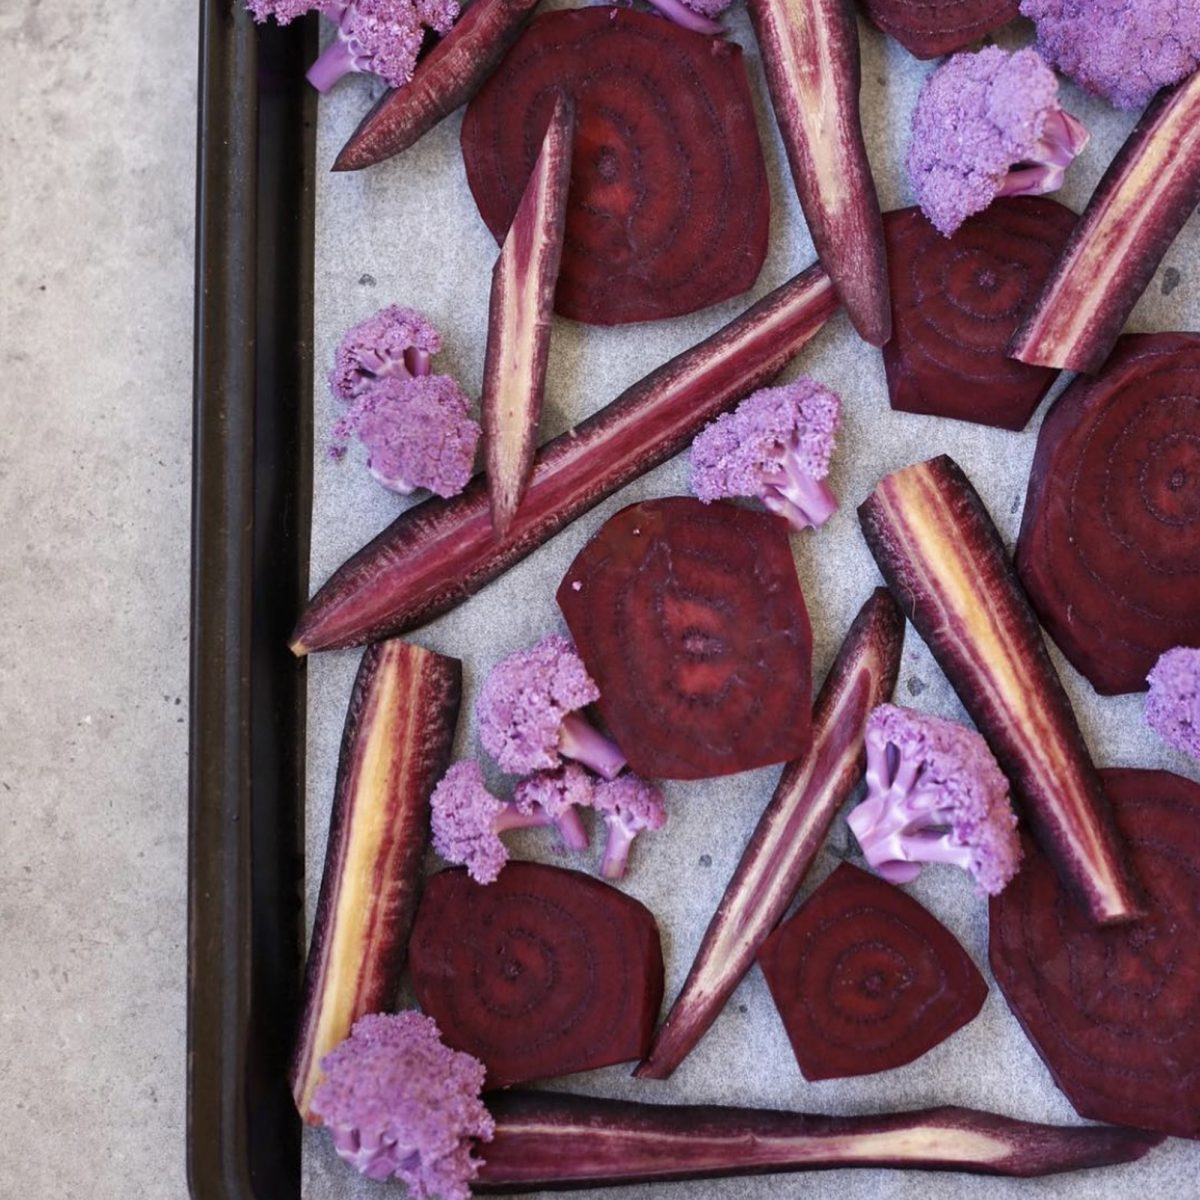 Purple veggies for baking